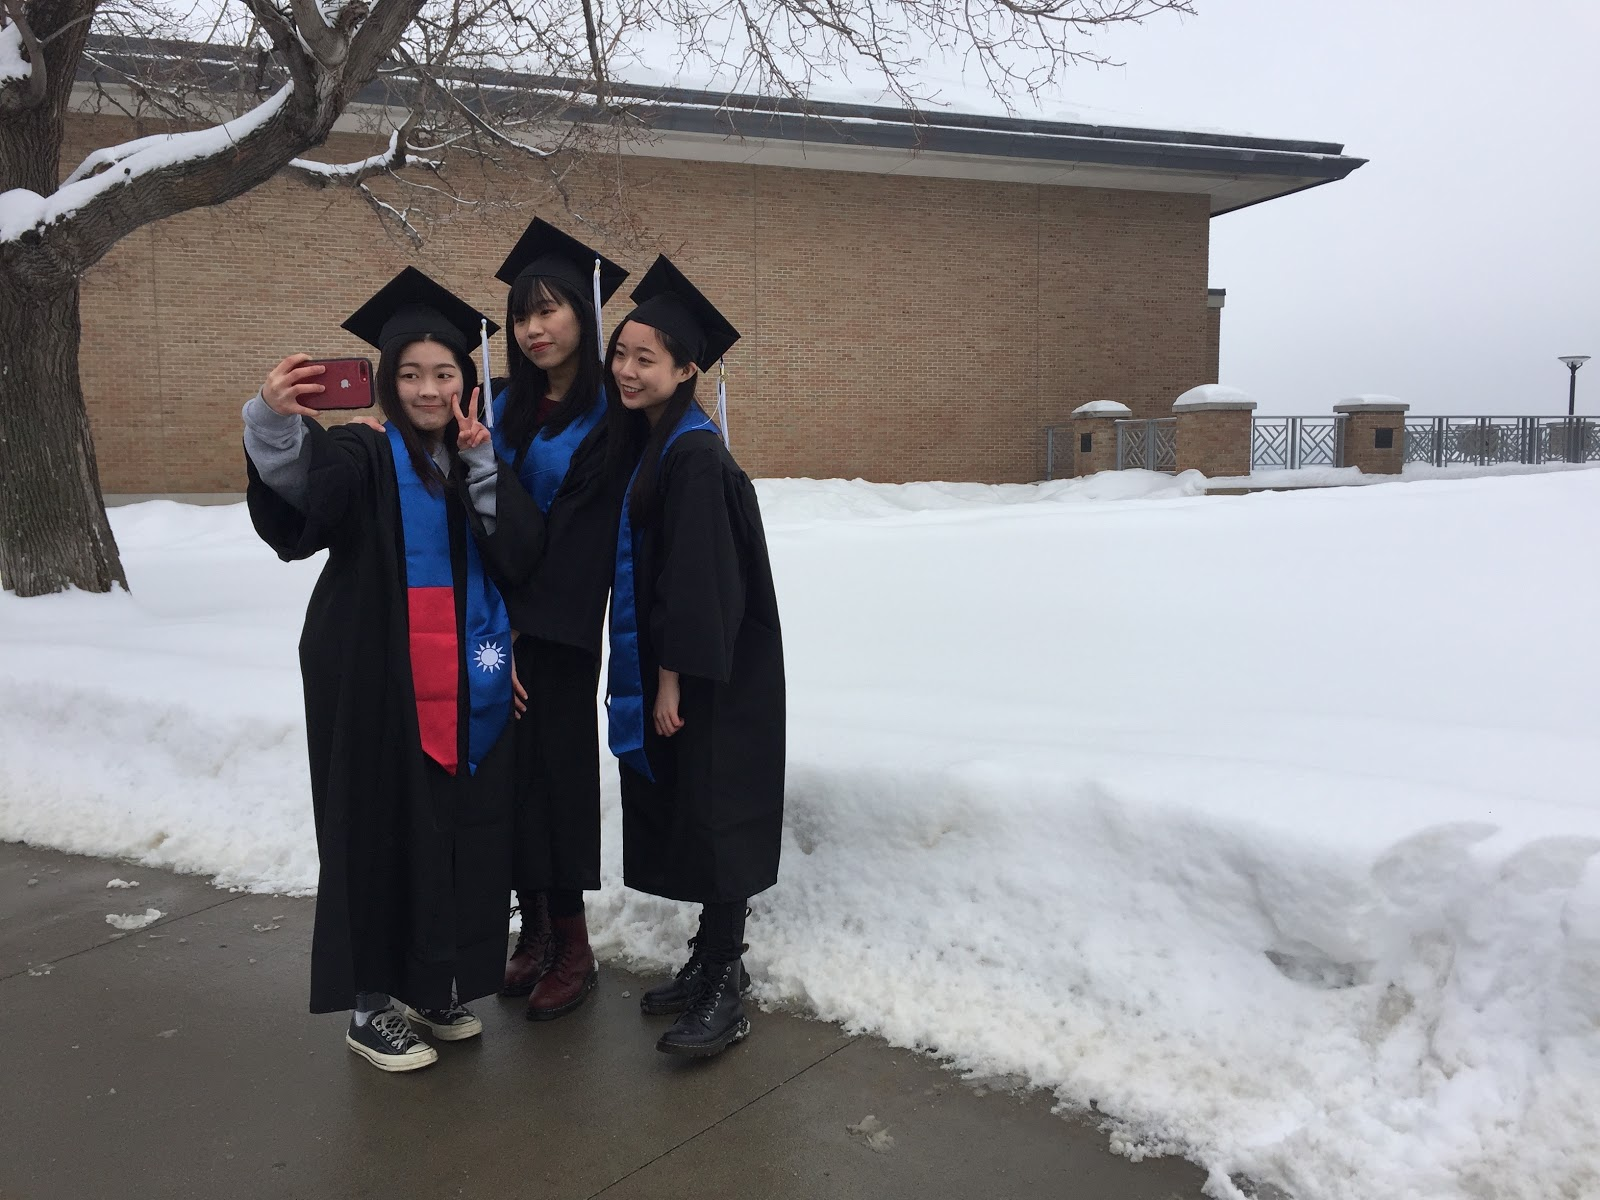 Ya-Hsin Hsueh, left, Chin-Yu Yu and Huei-Cin Chen take selfies in their caps and gowns outside New Main on the St. Paul campus on Saturday, Feb. 23, 2019. The three business administration majors graduate at the end of spring semester and will walk in the commencement exercises at the Minneapolis Convention Center on April 27. They attended the Grad Expo in the Great Hall to purchase their regalia.   (Photo by Margot M. Barry / The Metropolitan)